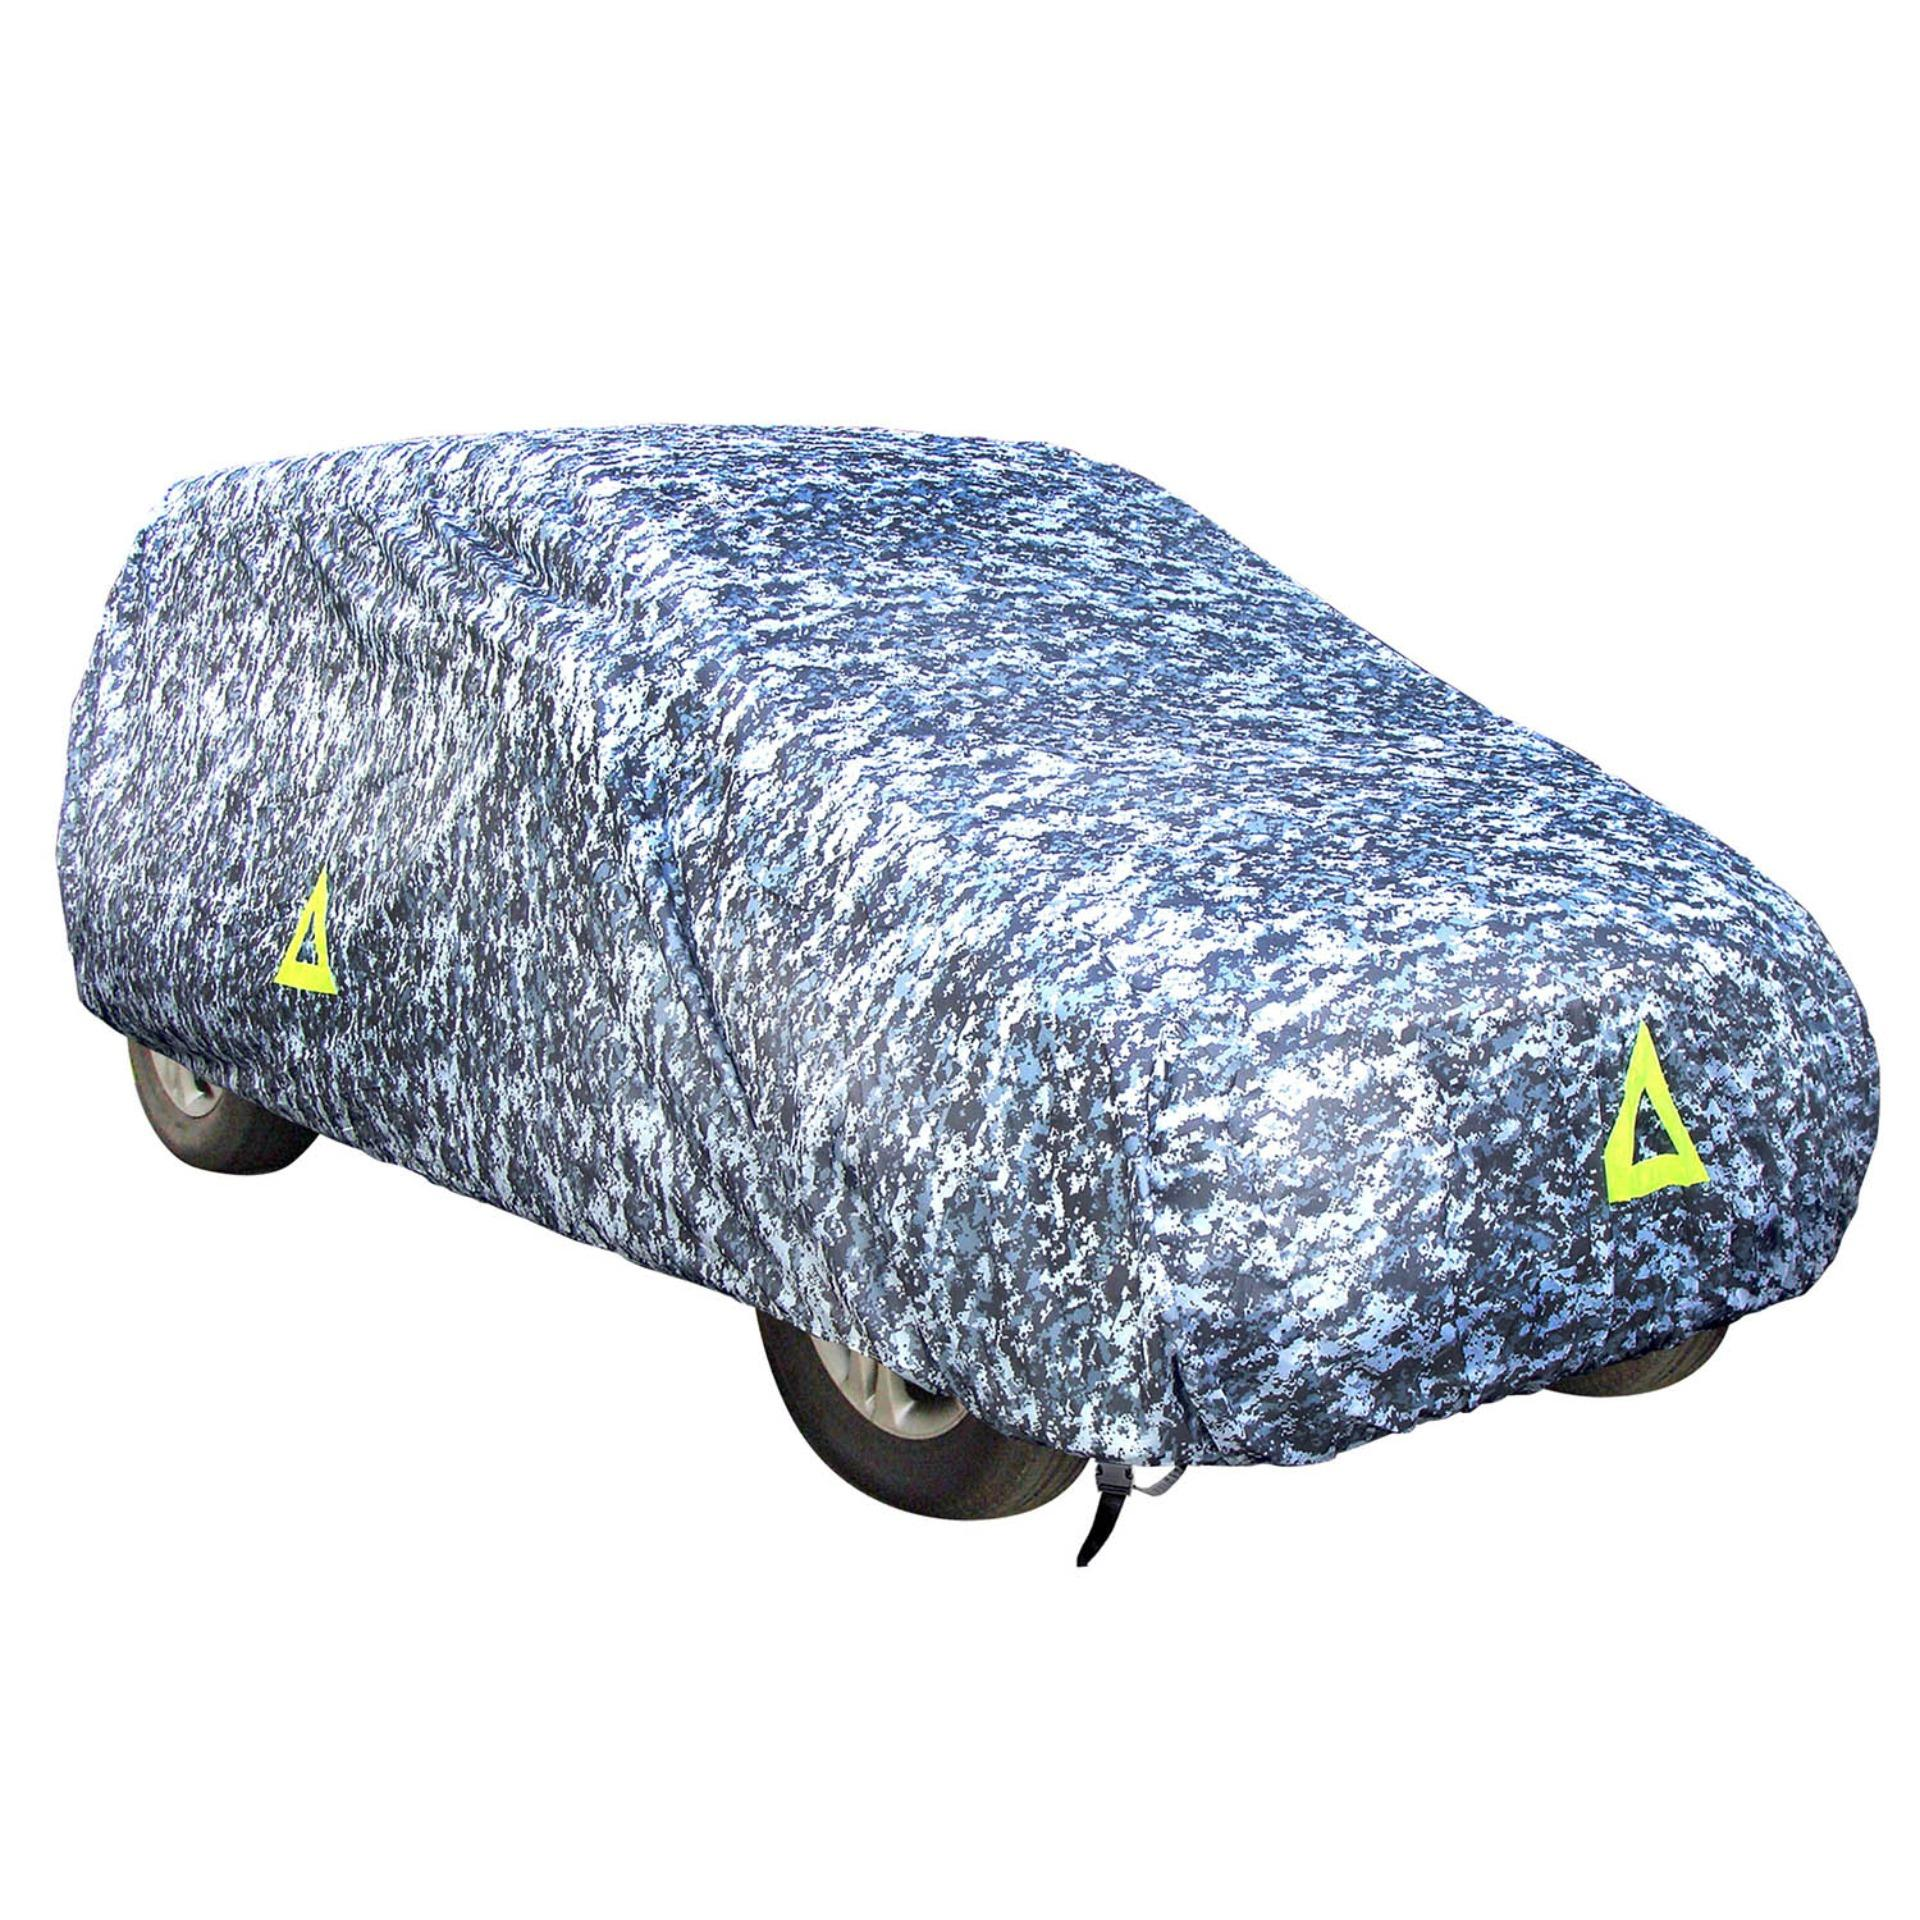 Deflector Arctic Camouflage Car Cover for SUV DCC-SUV2-CF